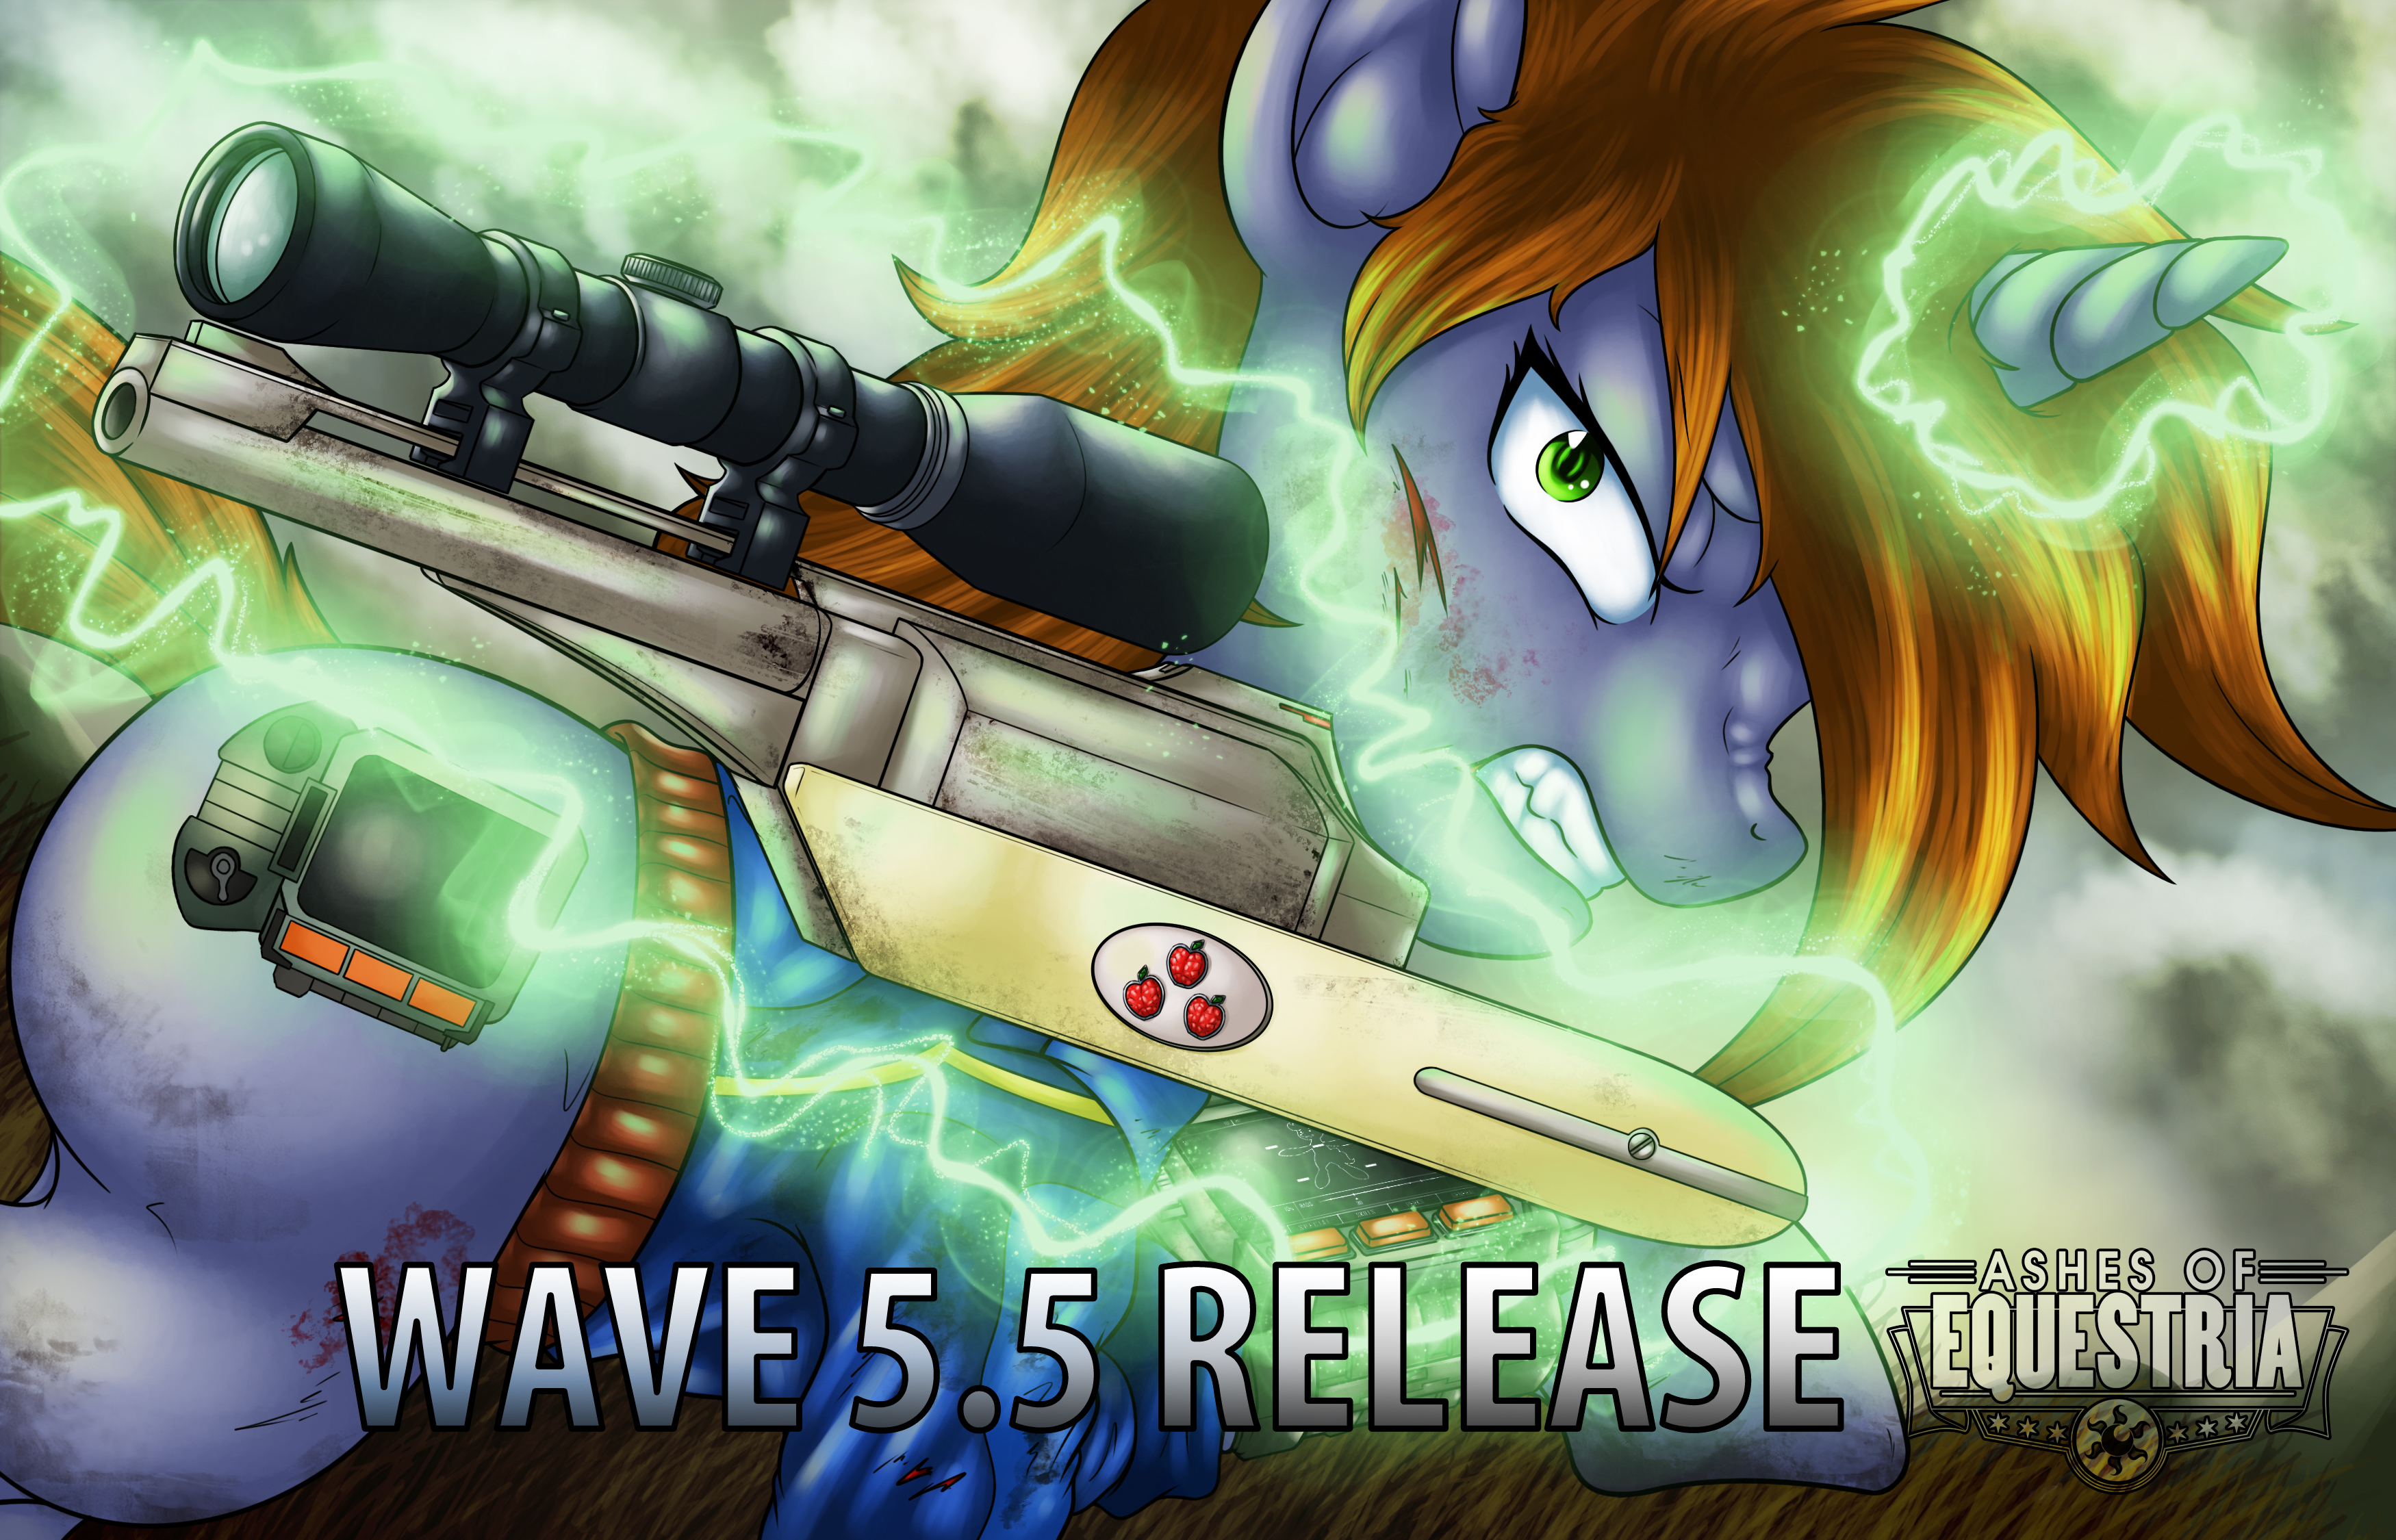 Wave 5.5 Release